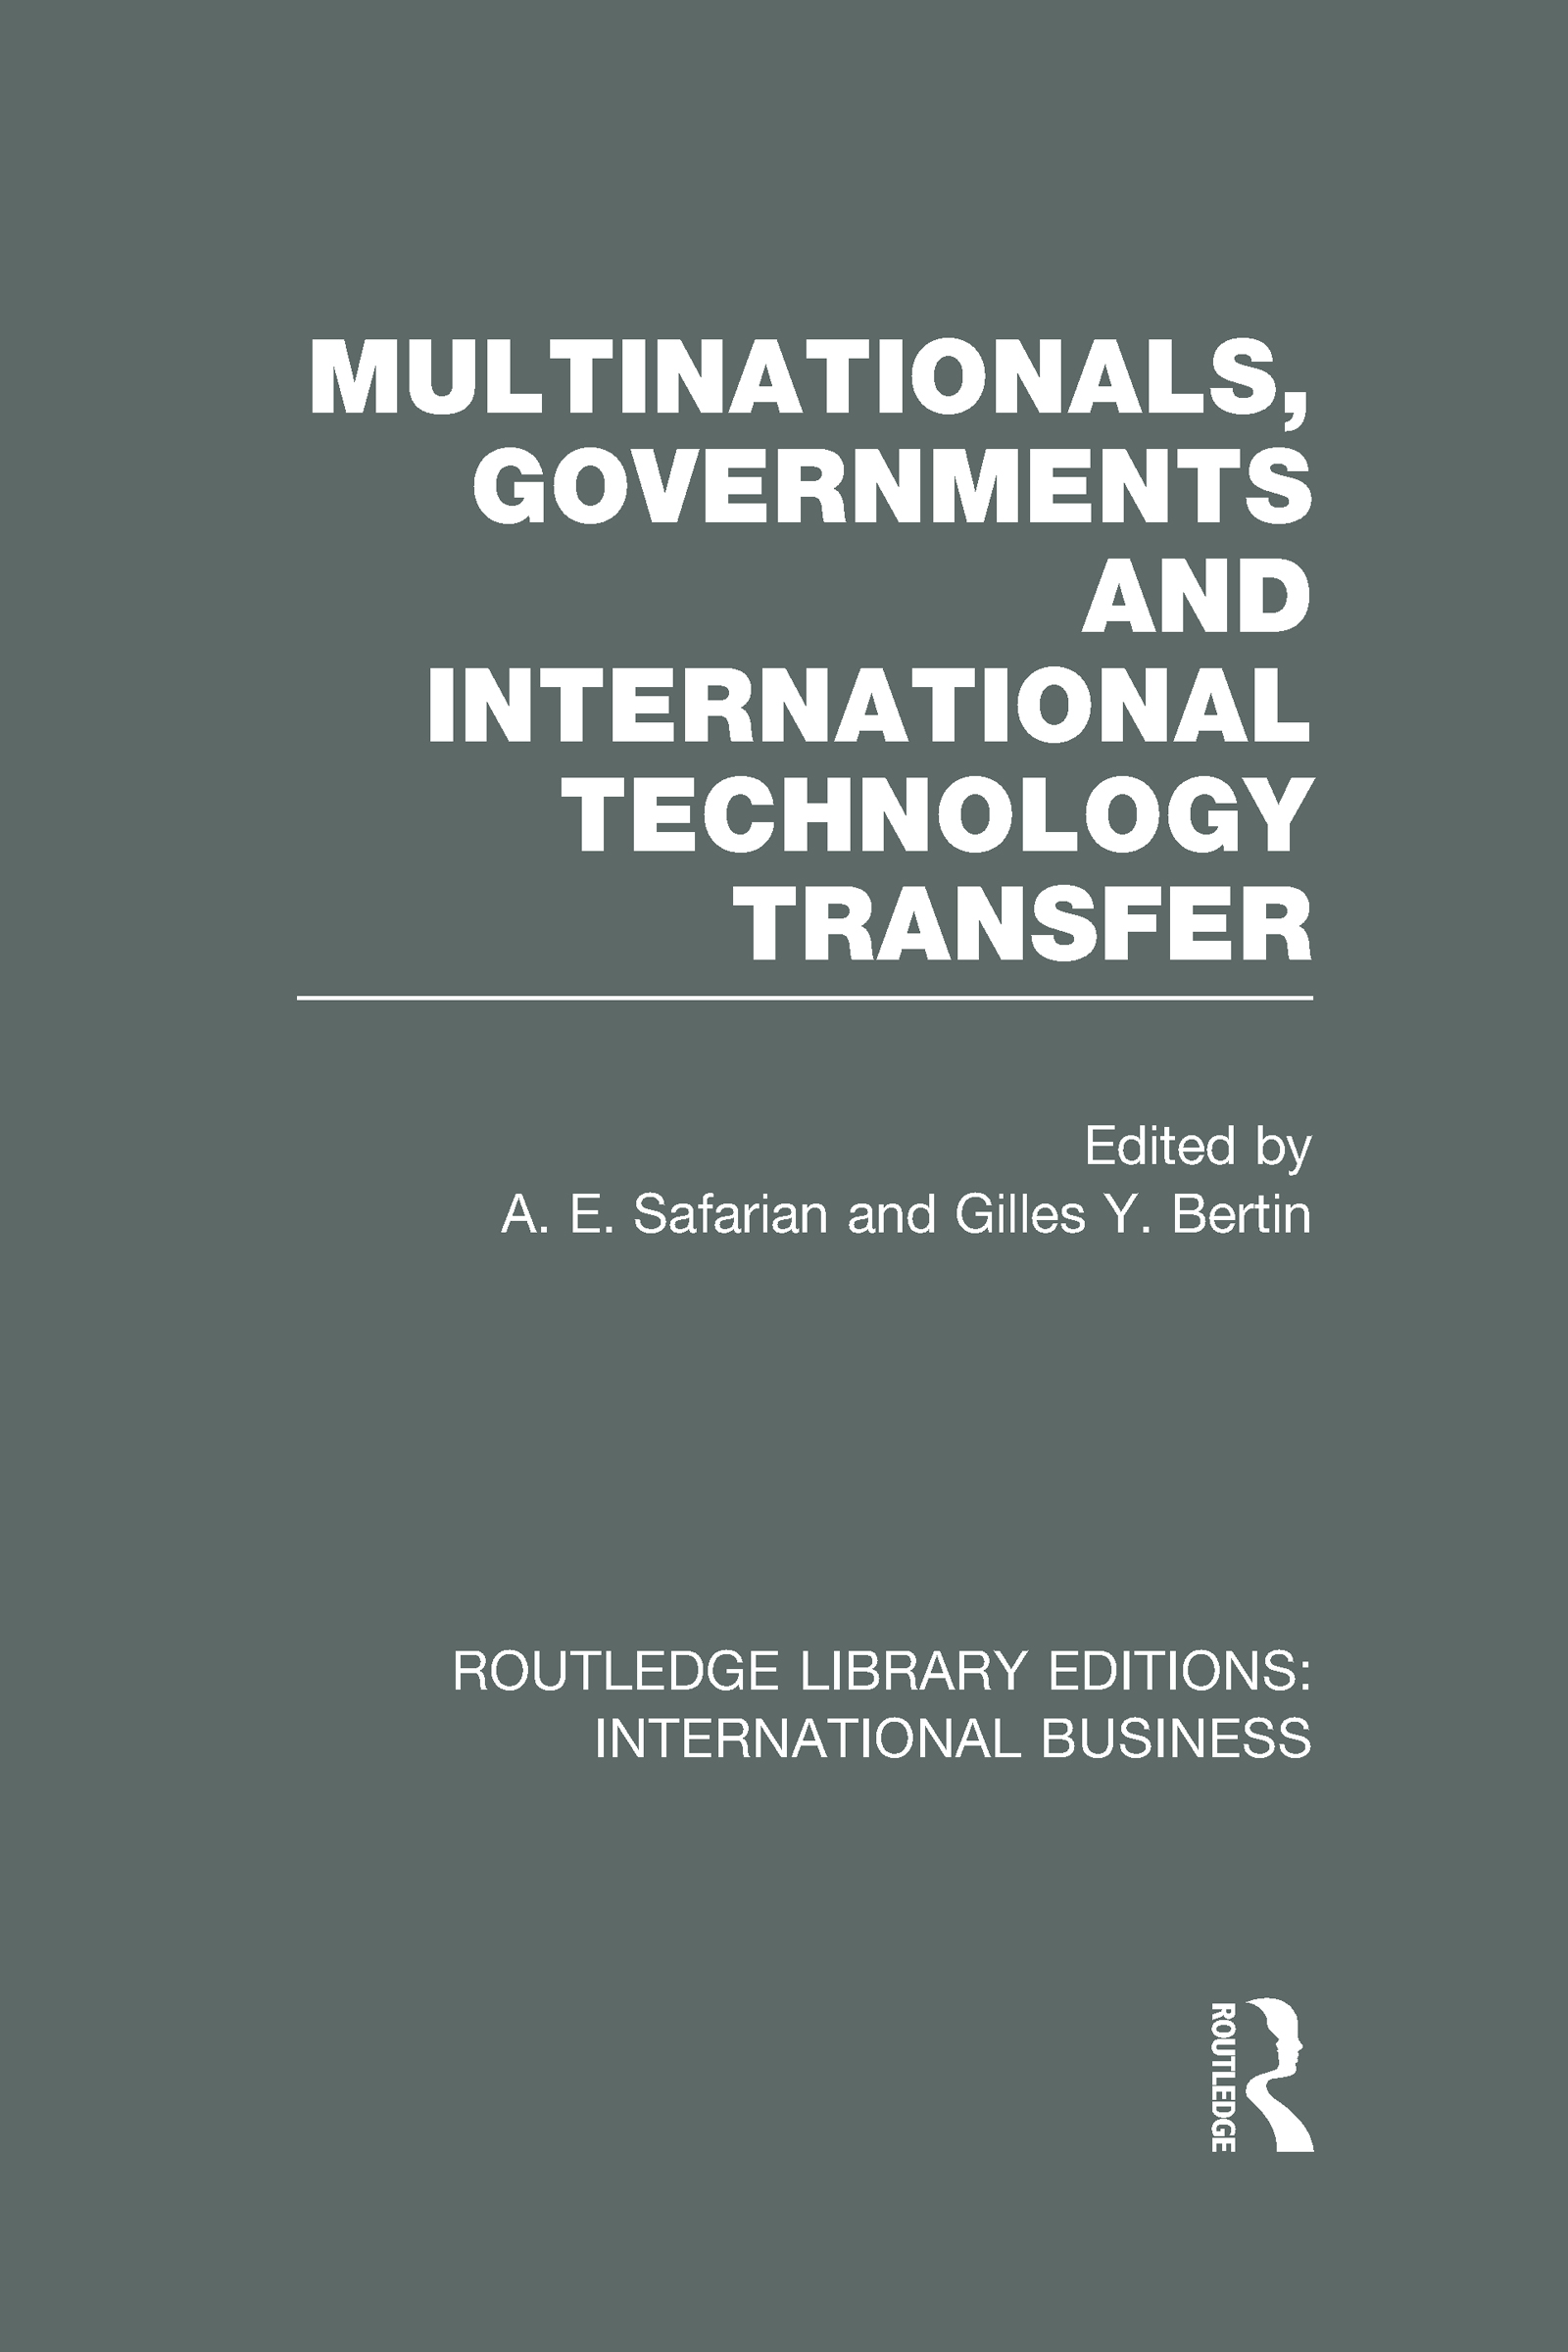 Multinationals, Governments and International Technology Transfer (RLE International Business) (Hardback) book cover